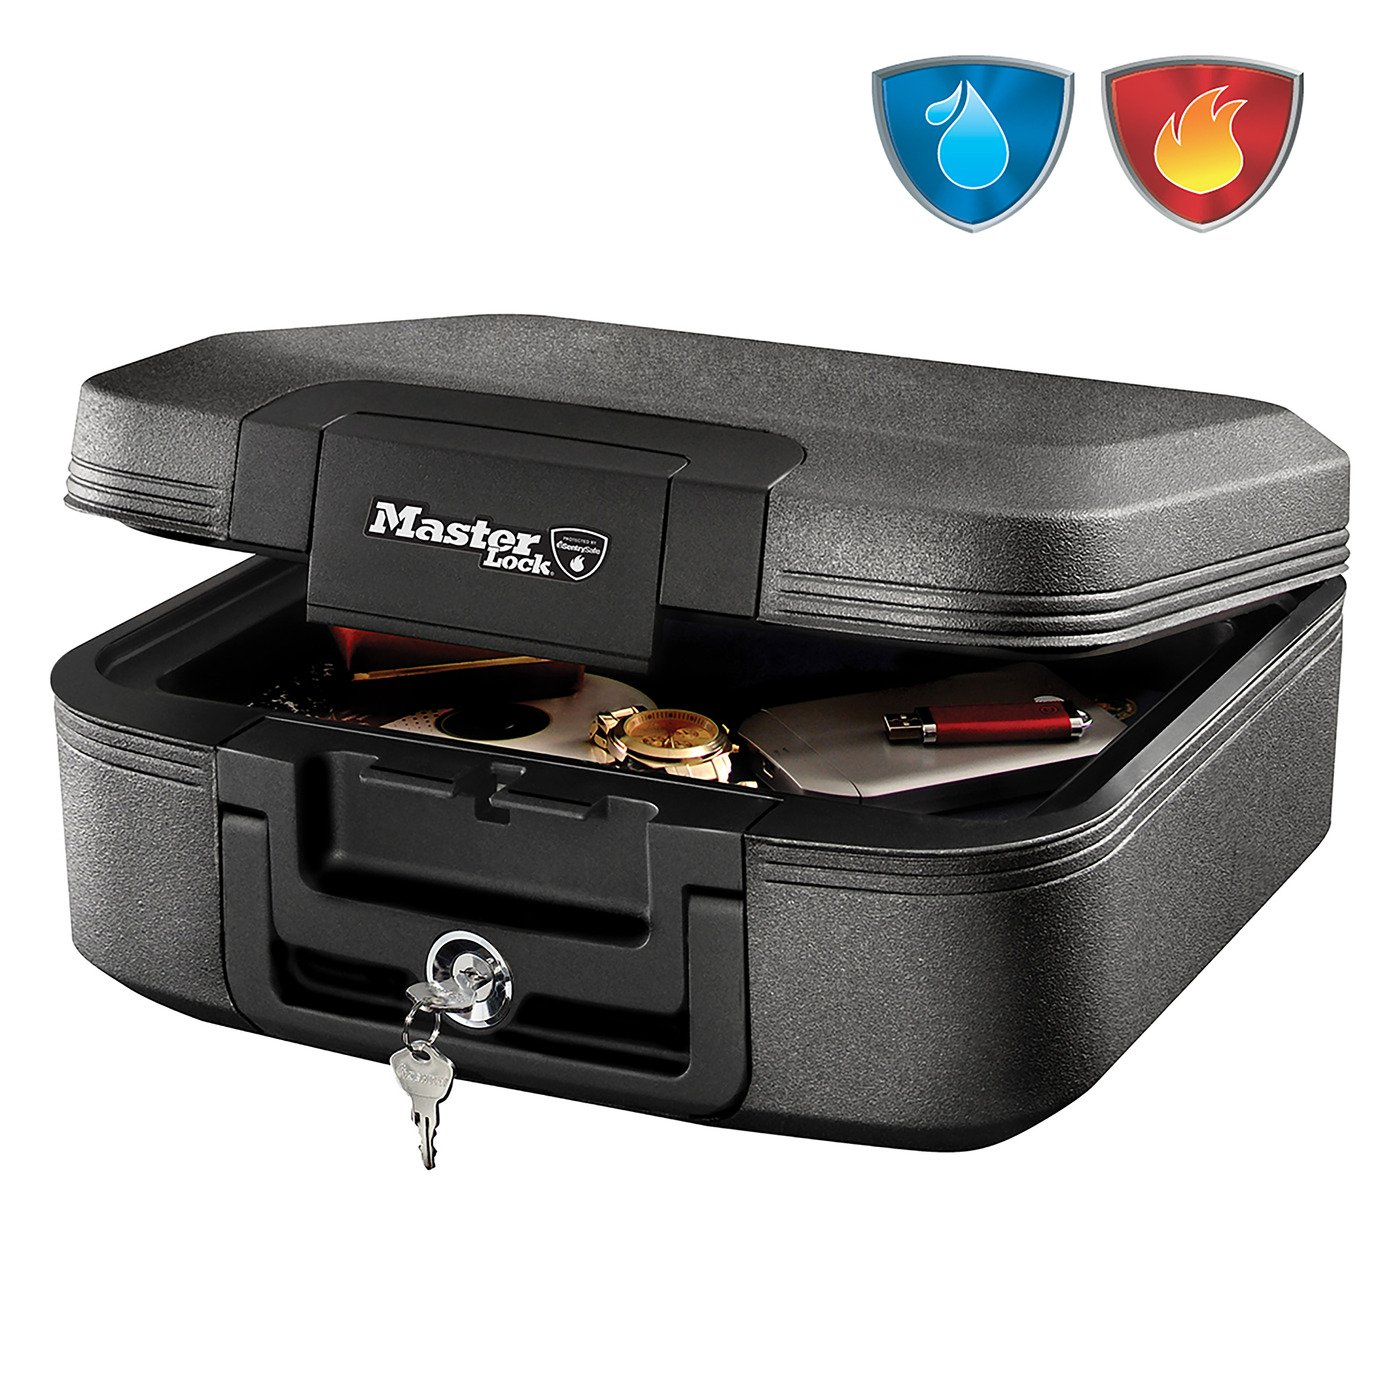 Master Lock A4 Fire Resistant and Waterproof Chest